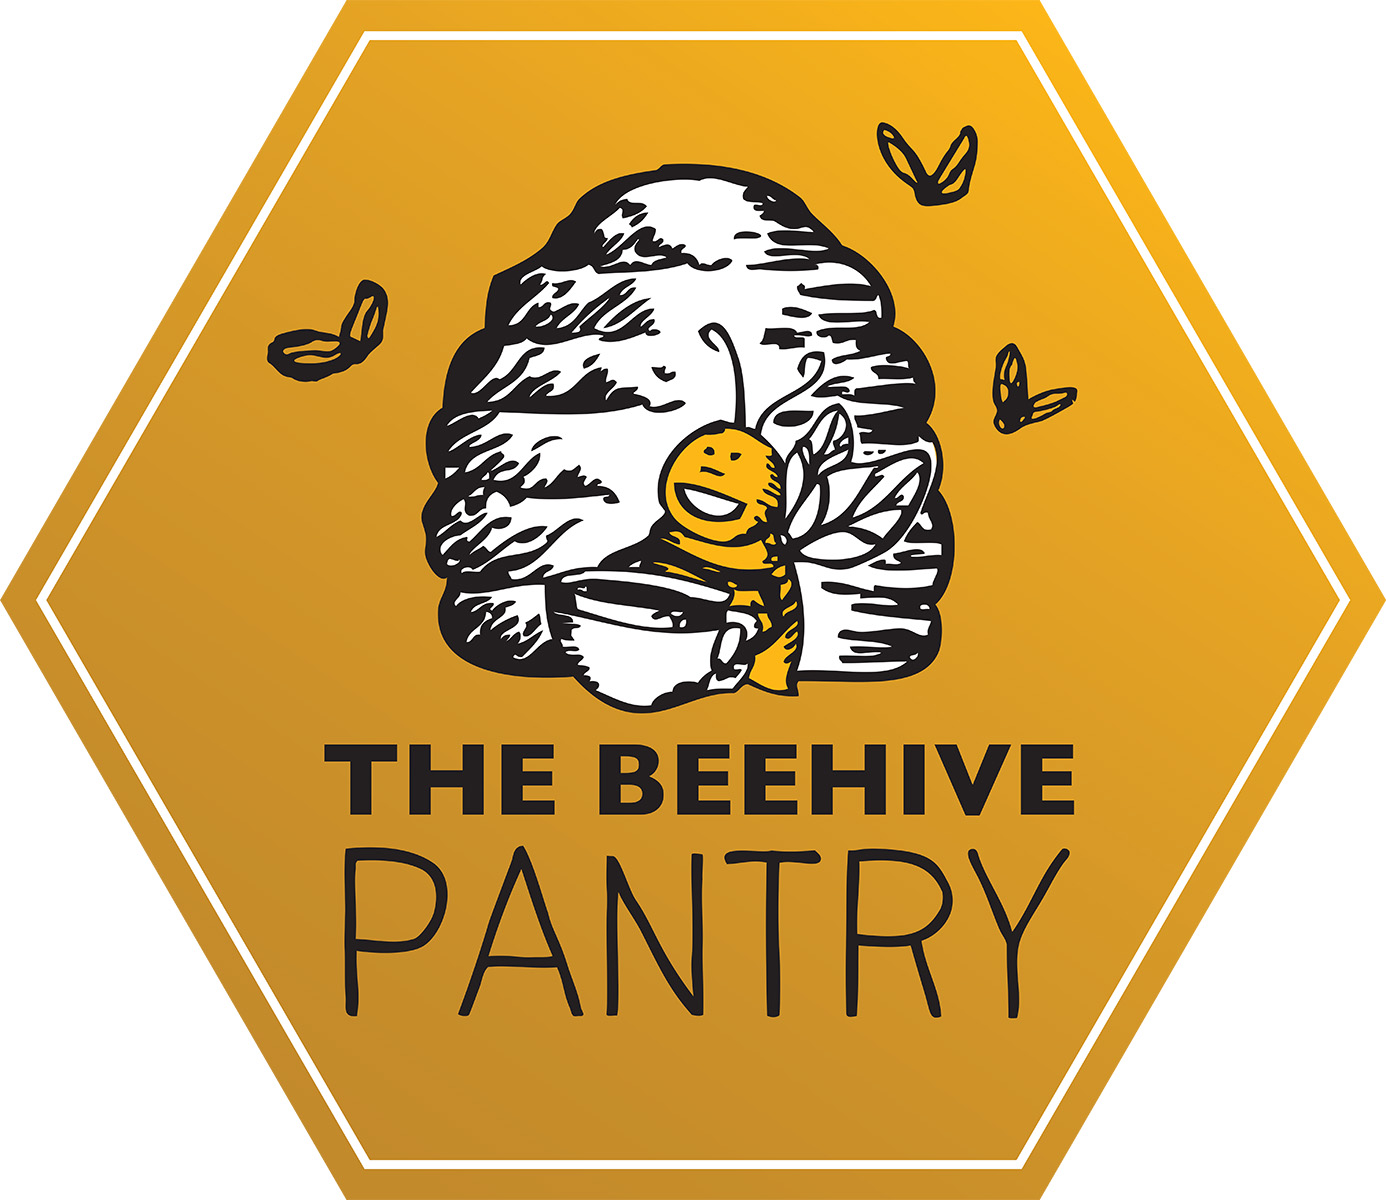 The Beehive Pantry